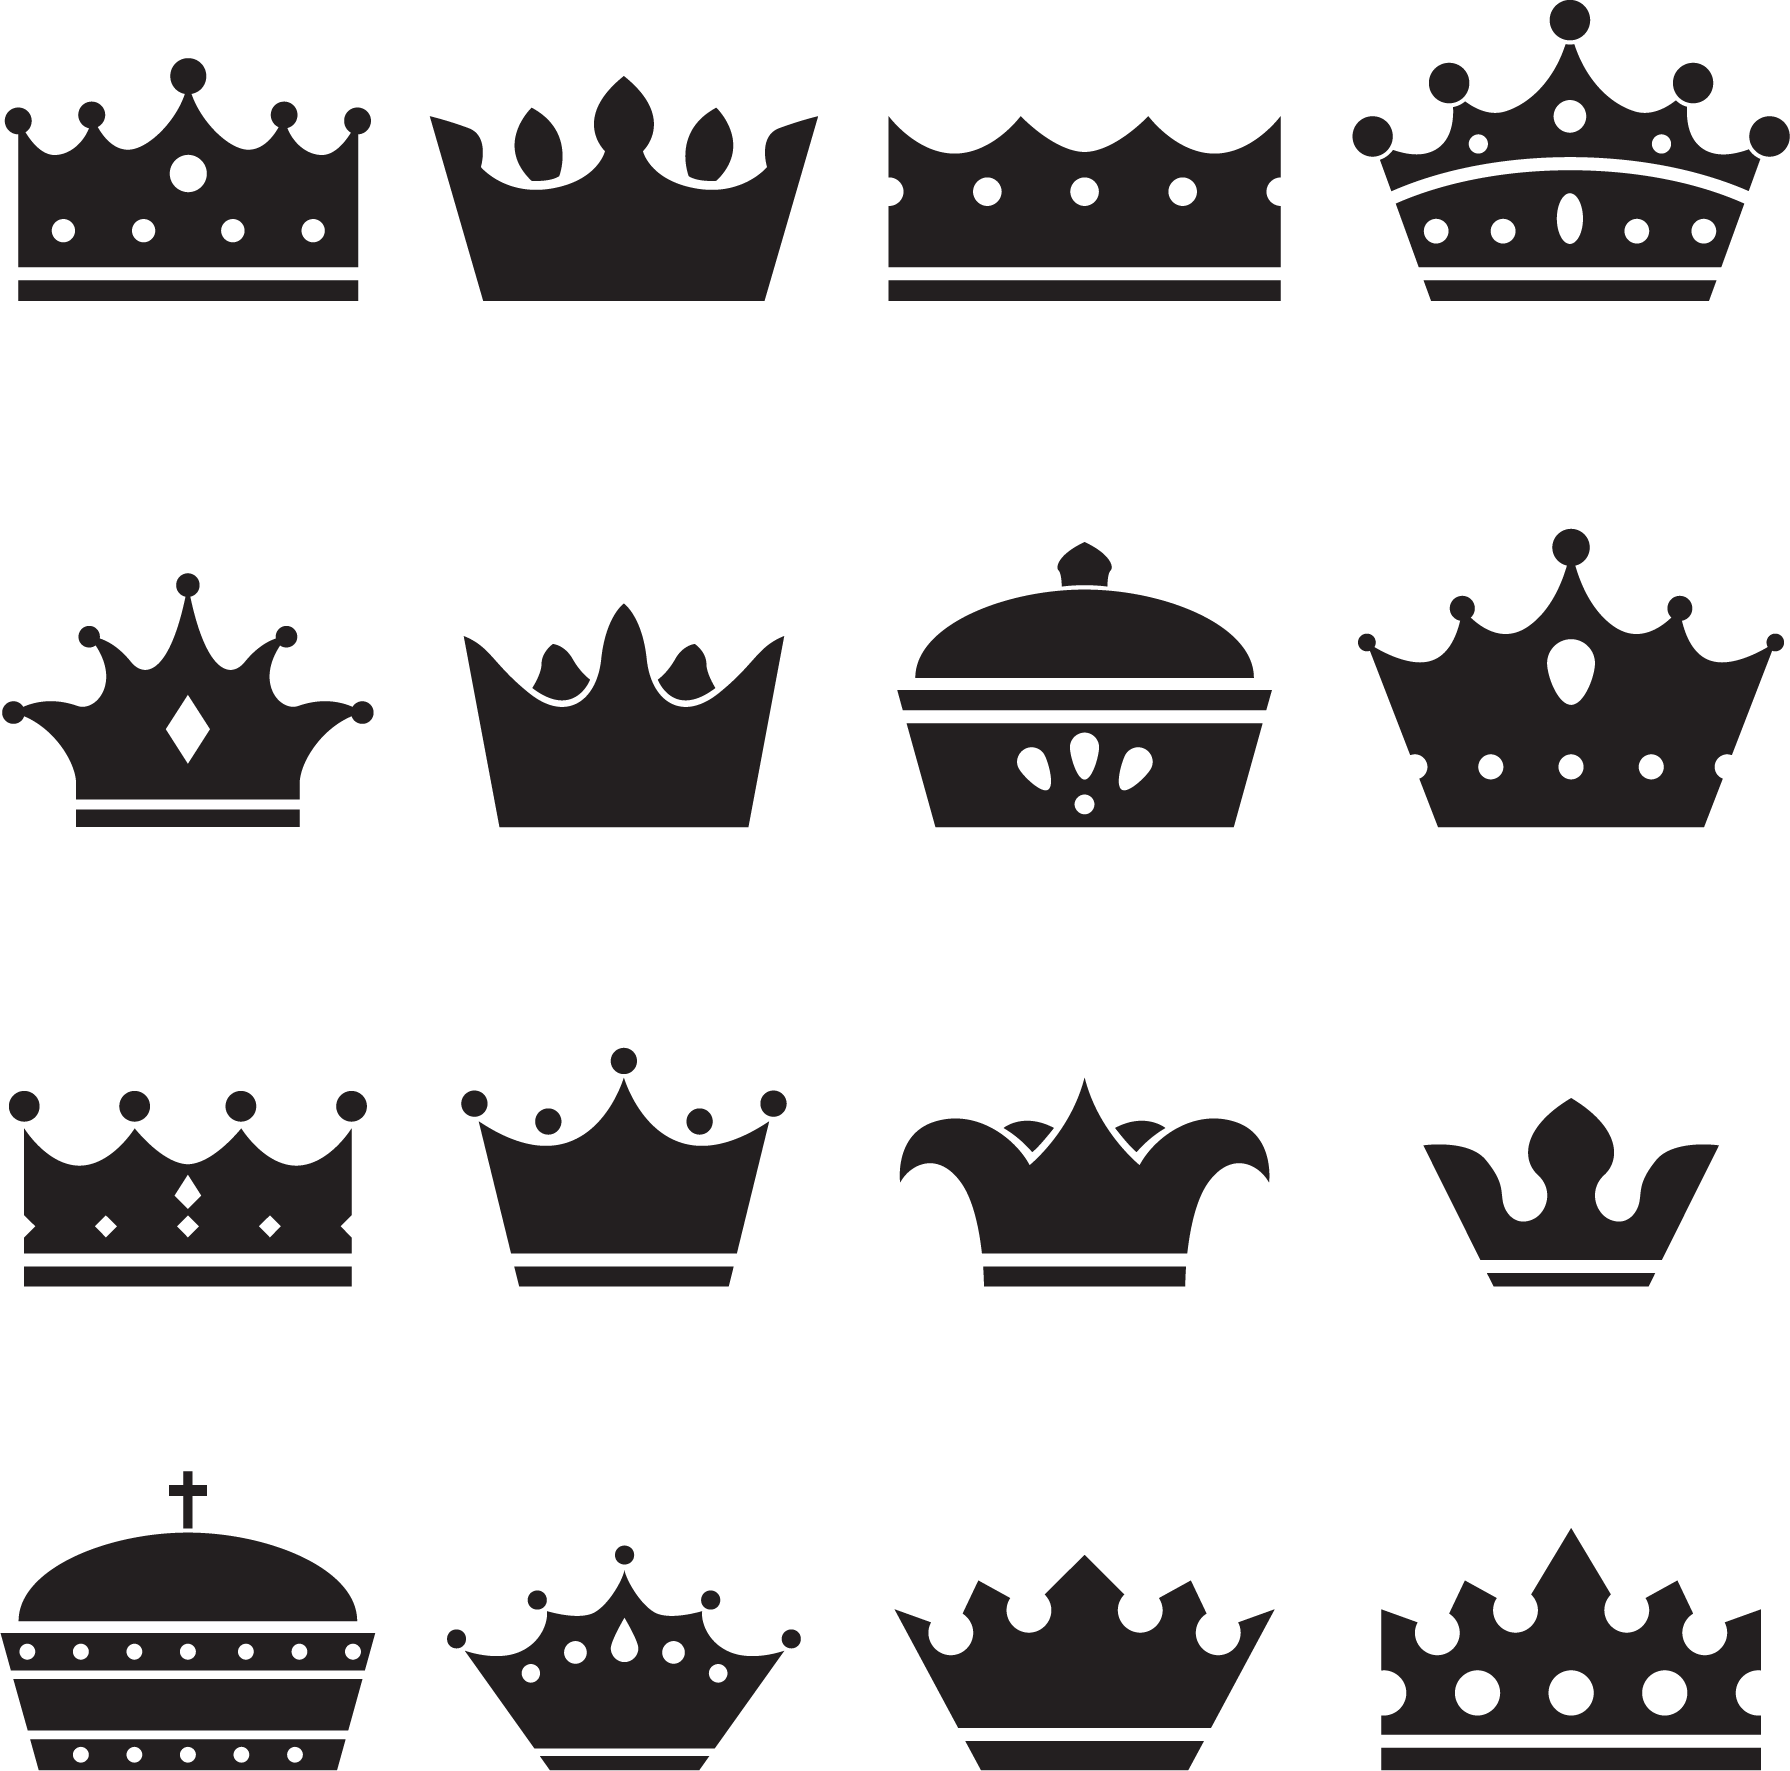 Crown silhouette clipart vector freeuse Crown of Queen Elizabeth The Queen Mother Silhouette Illustration ... vector freeuse